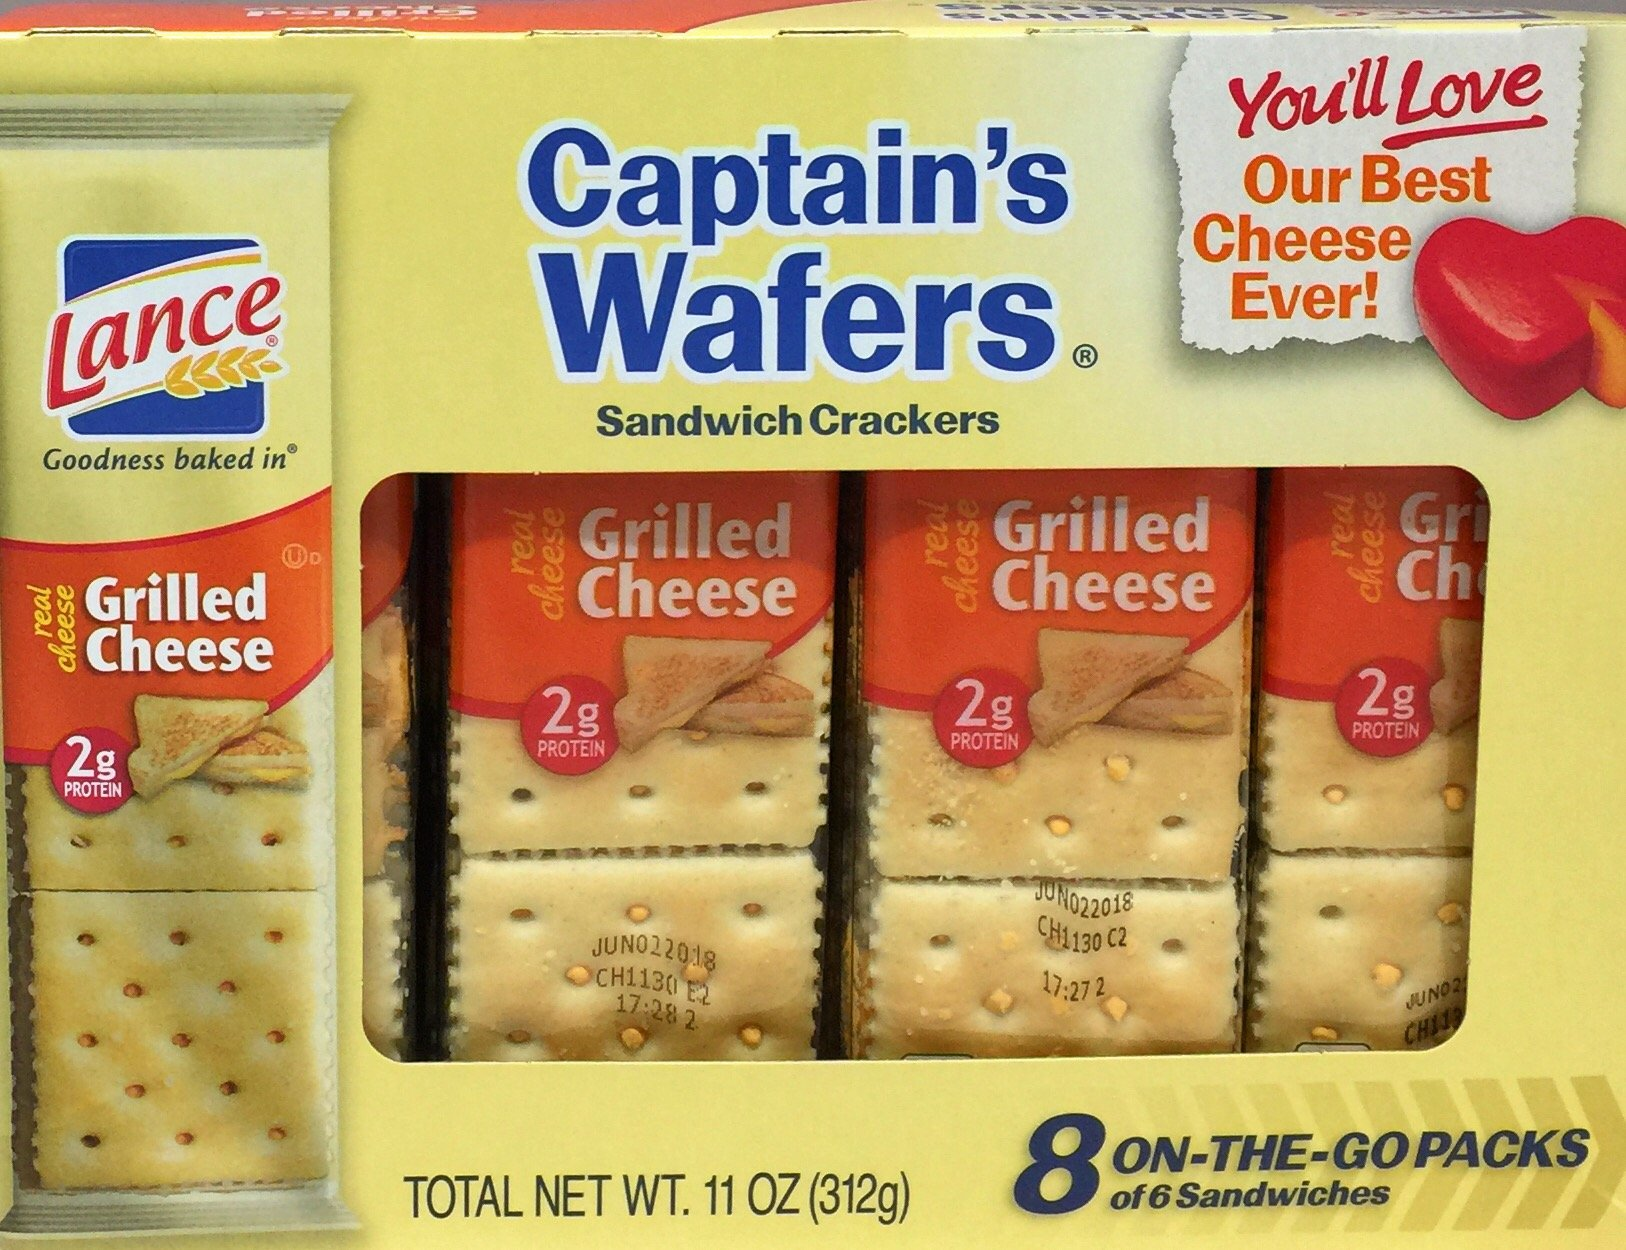 Lance Captains Wafers Crackers Grilled Cheese 8 Count (Pack of 3)